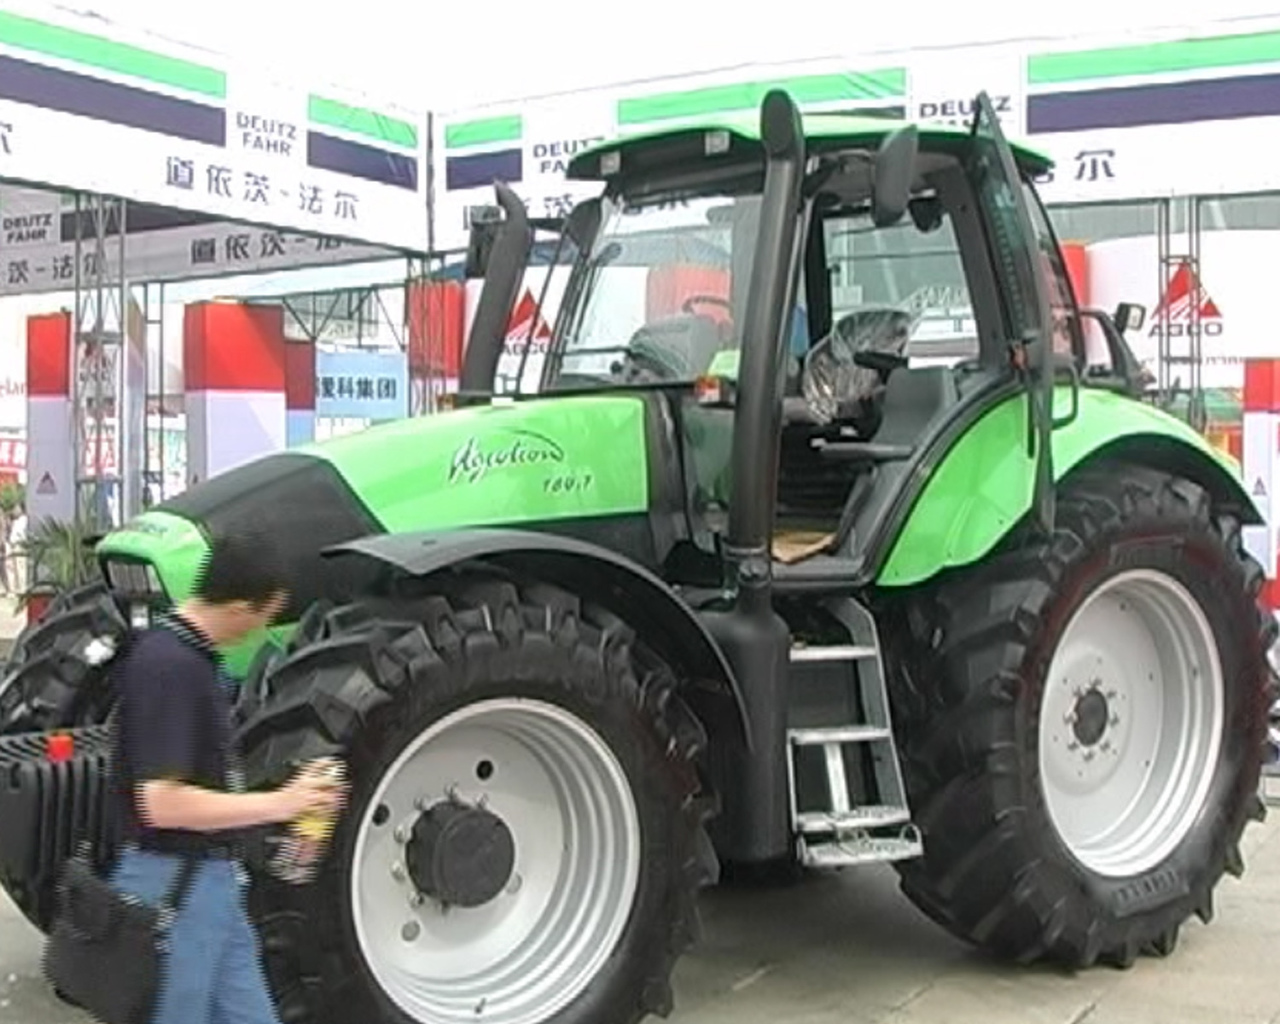 Deutz-Fahr Harbin International Convention Exhibition - 2 parte